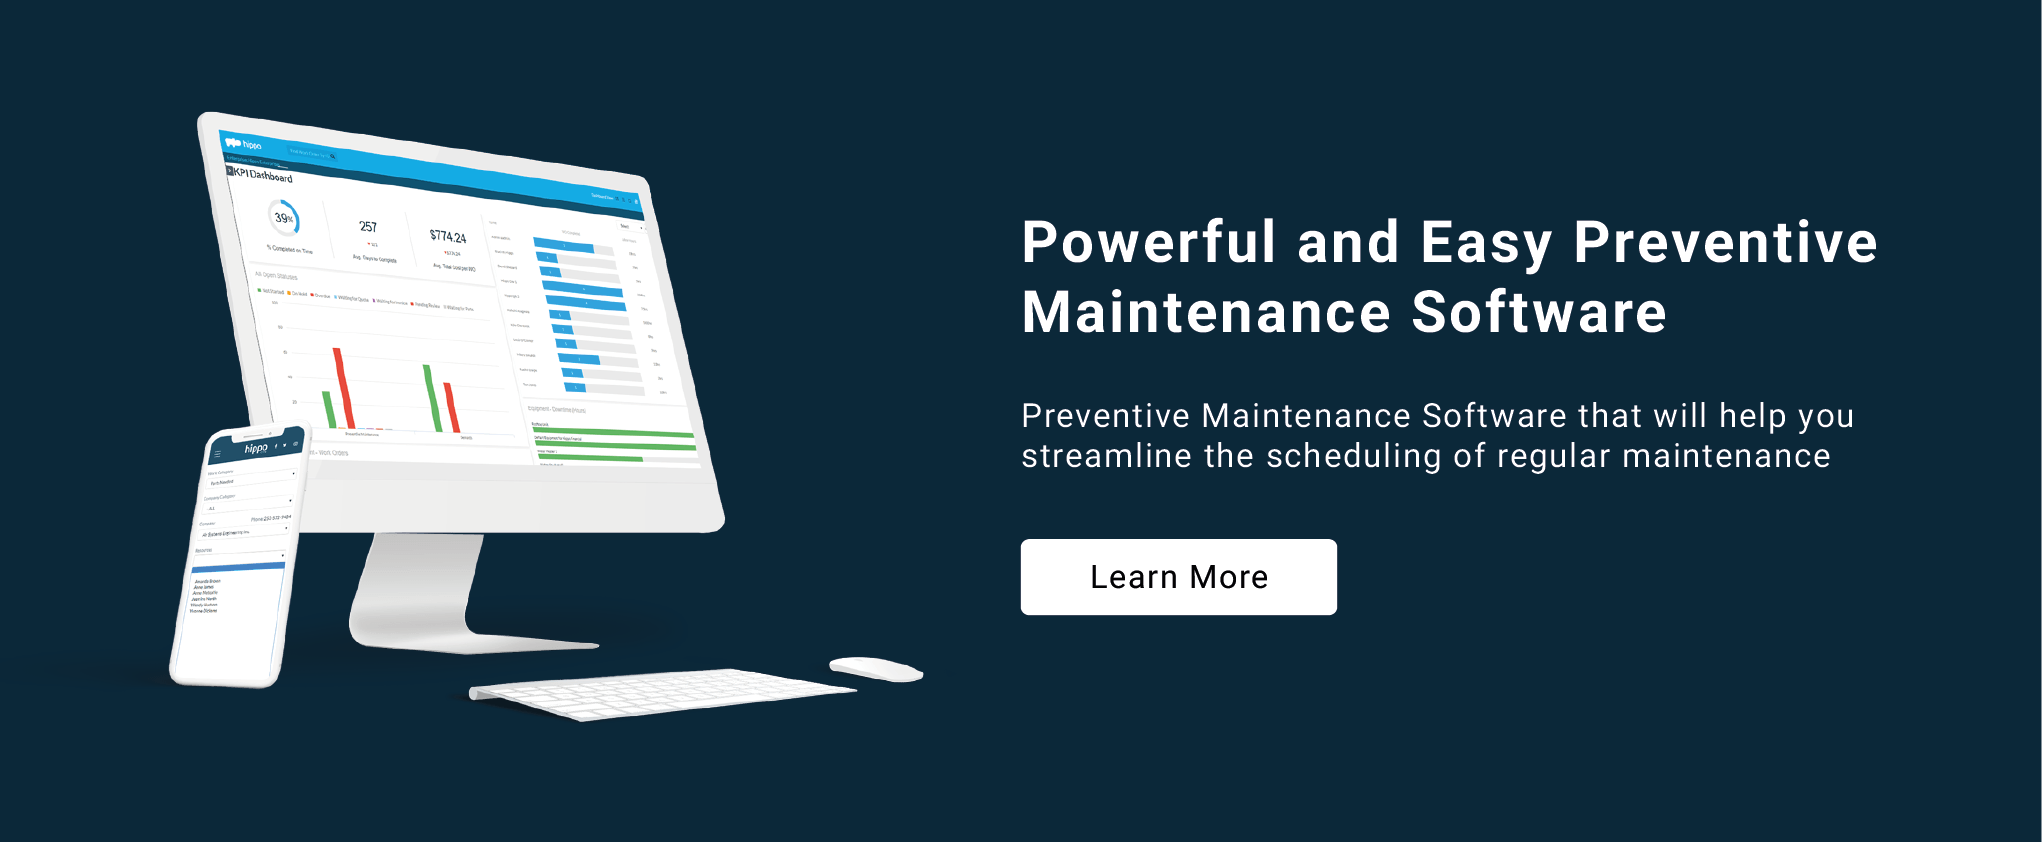 Preventive Maintenance Software